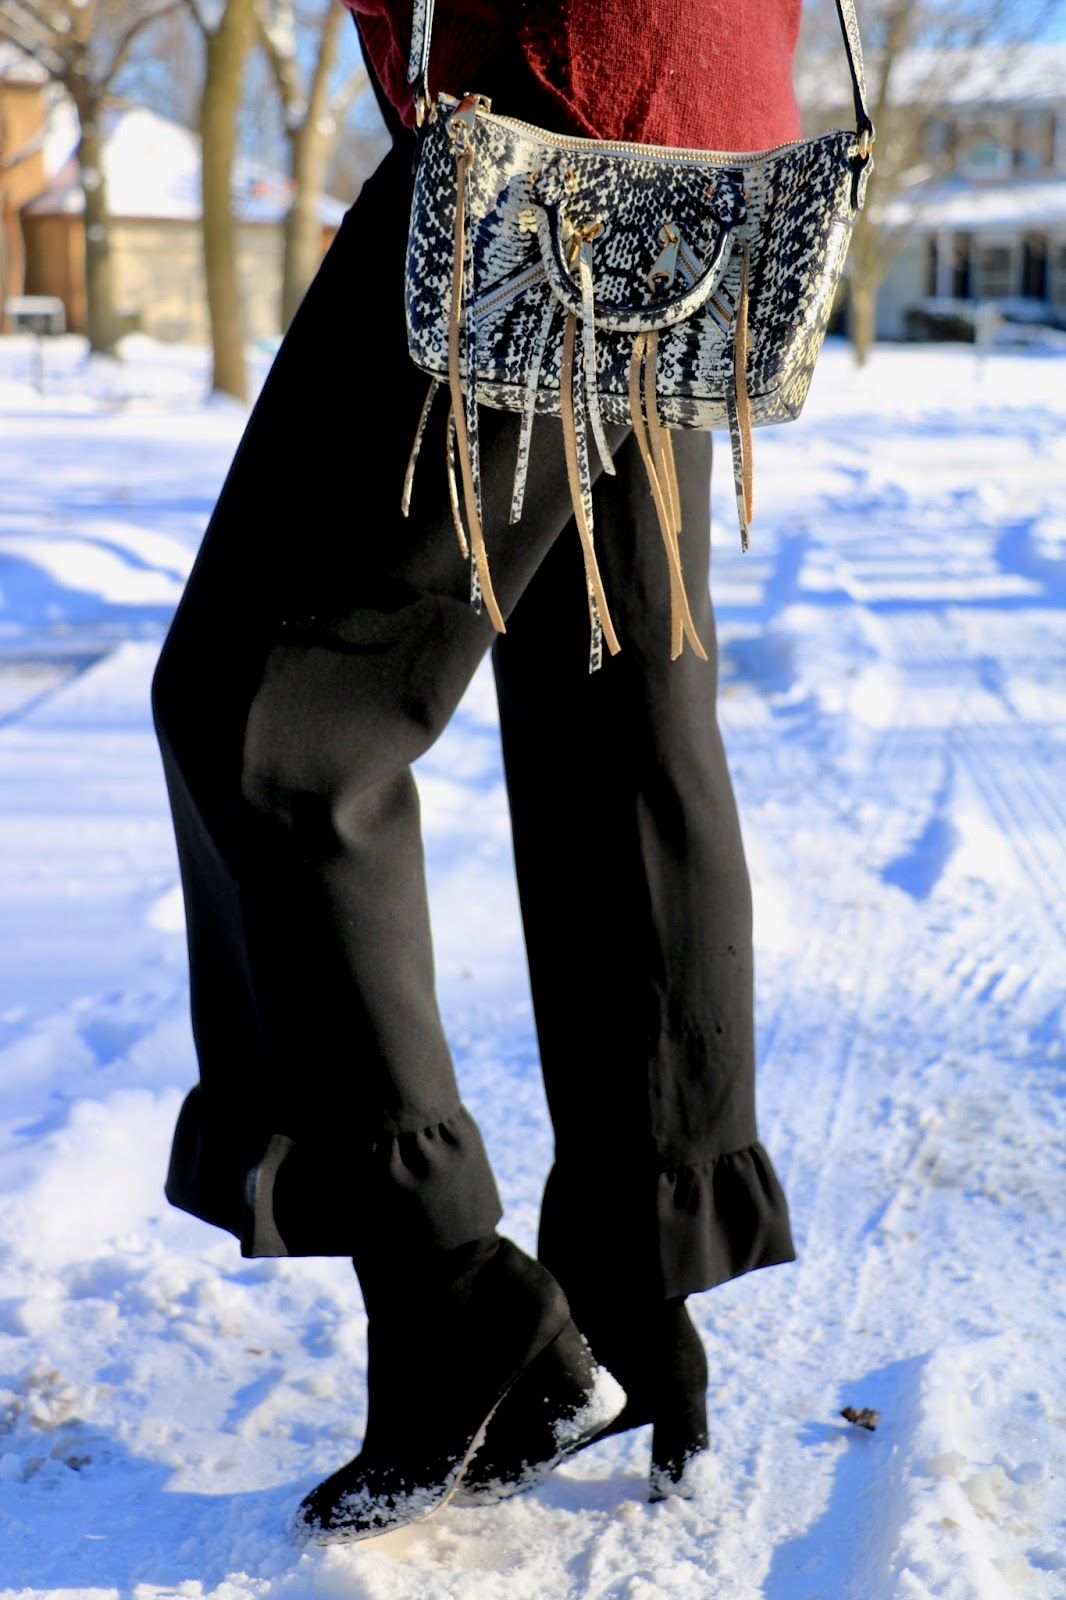 Nyc fashion blogger Kathleen Harper's ruffle-cuff pants from Banana Republic